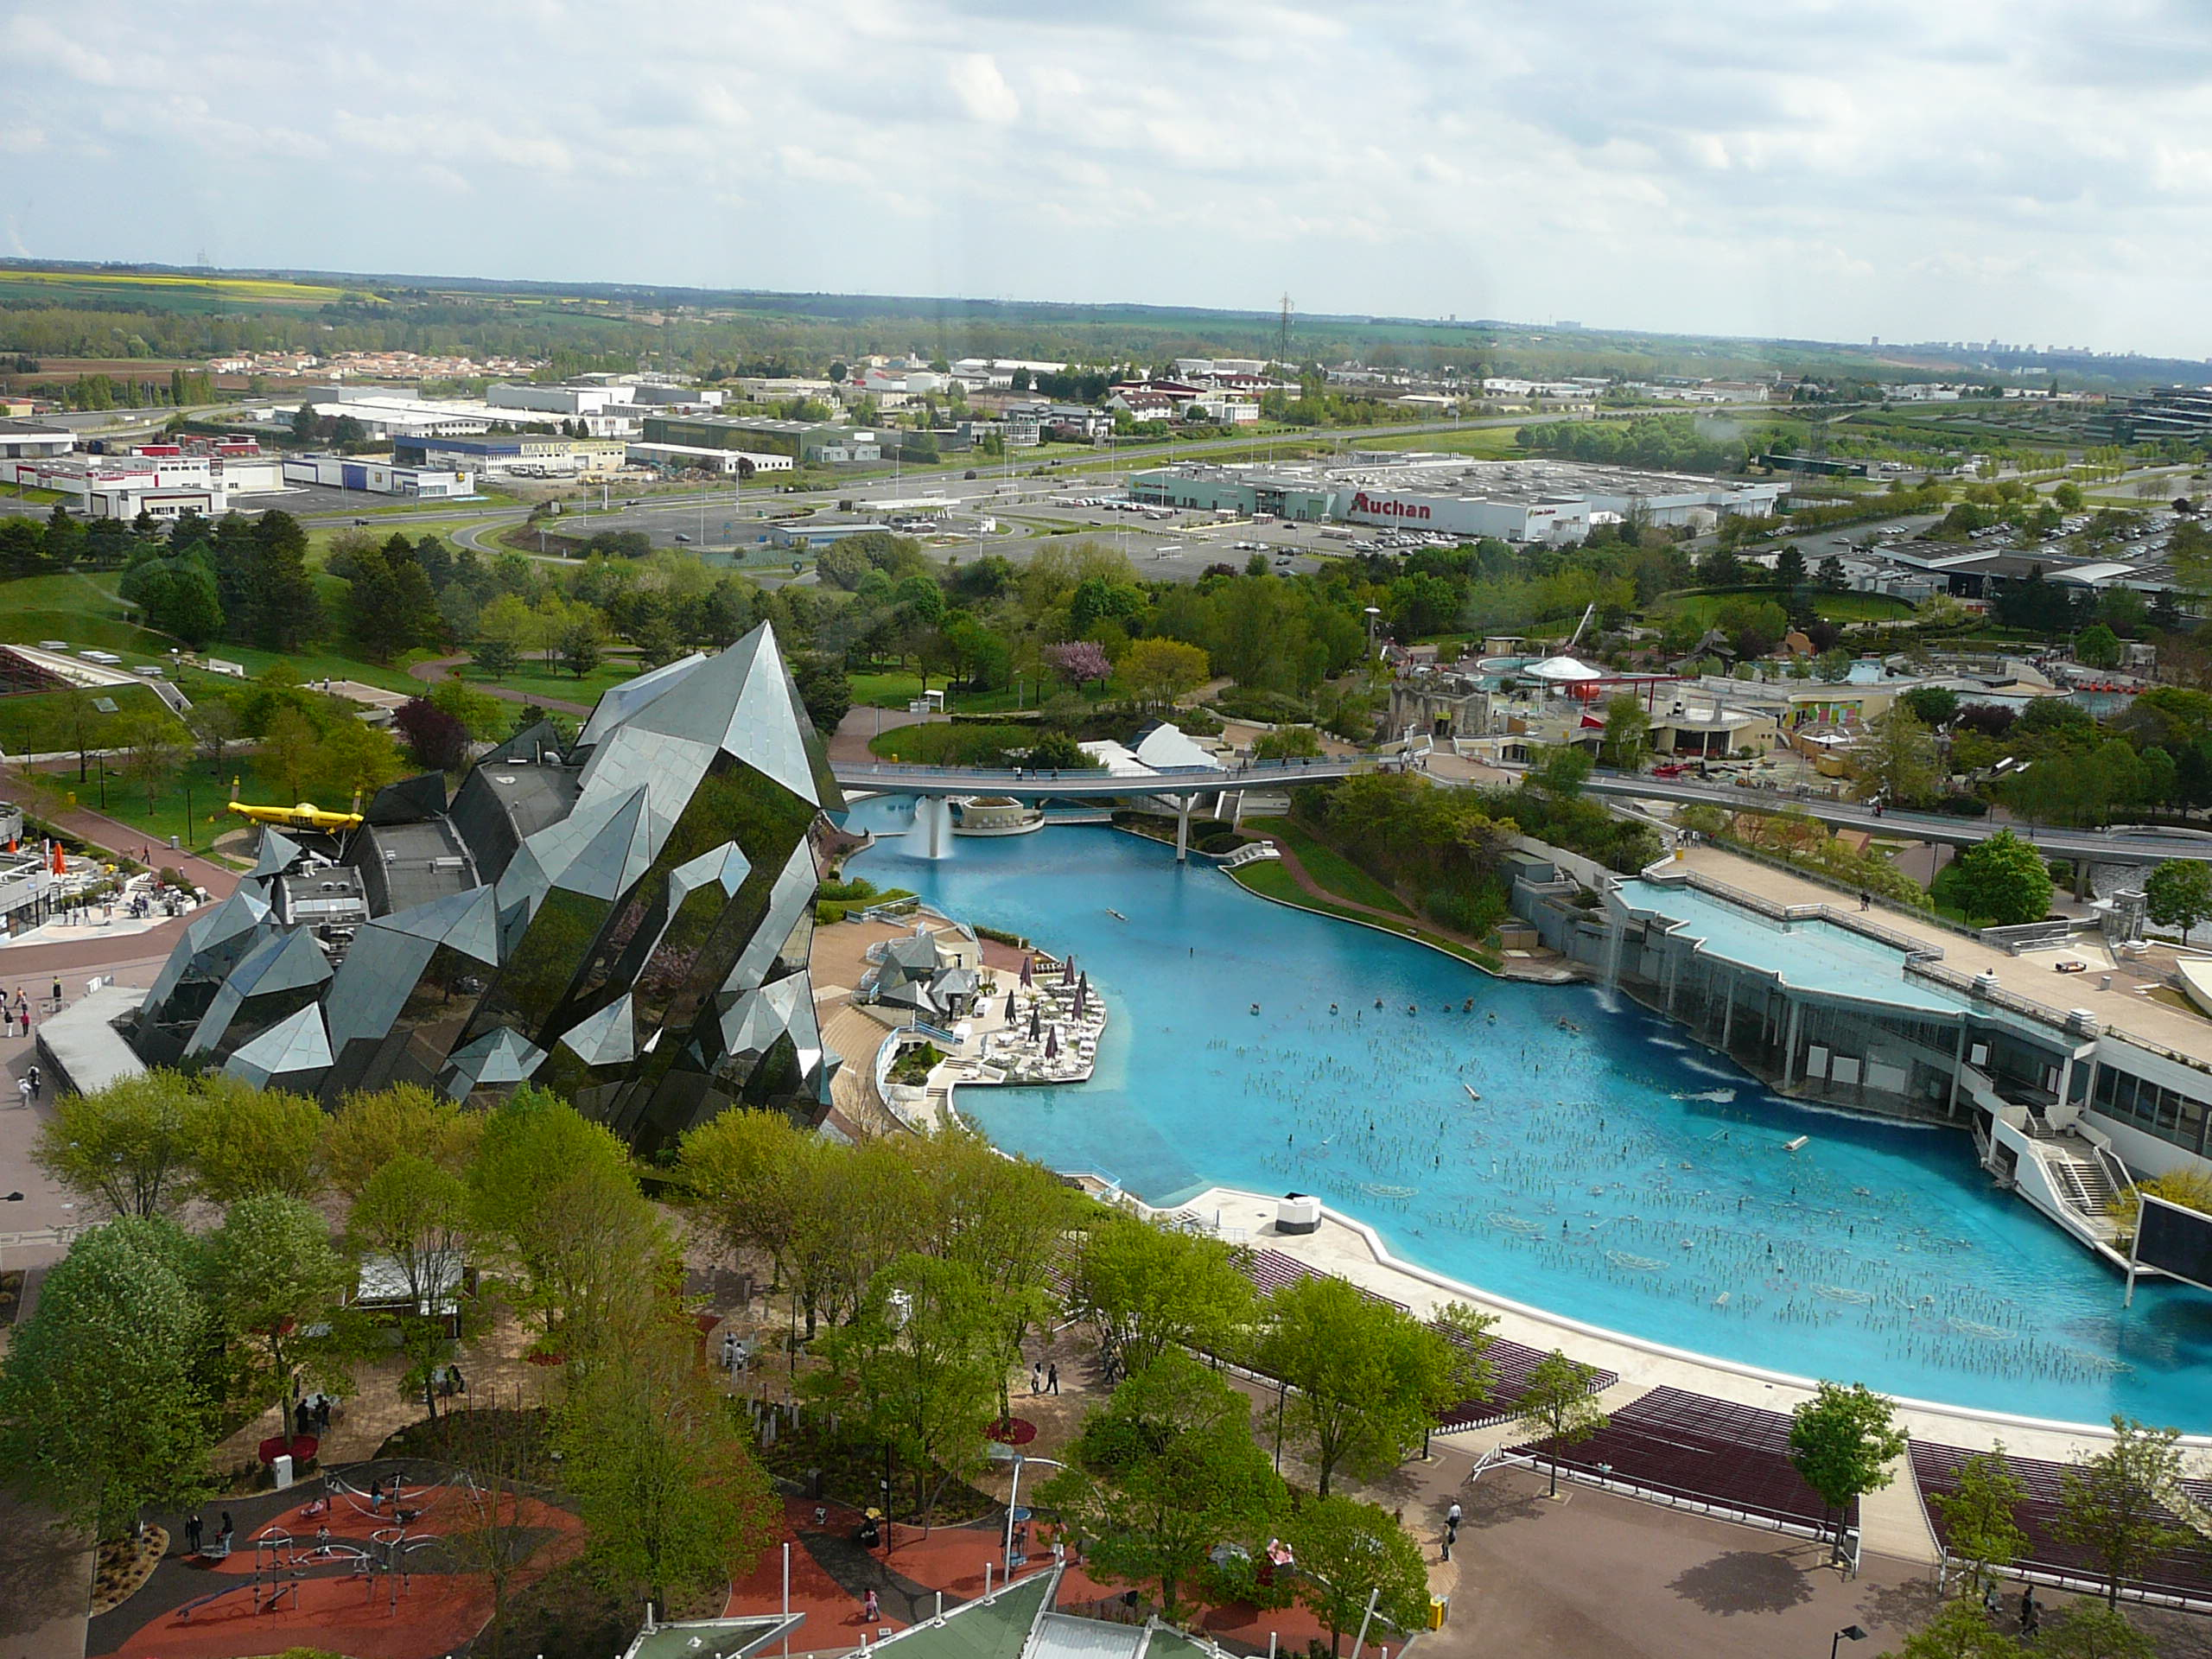 Futuroscope Poitier First Impressions Of Poitiers, France | Runaway Jane